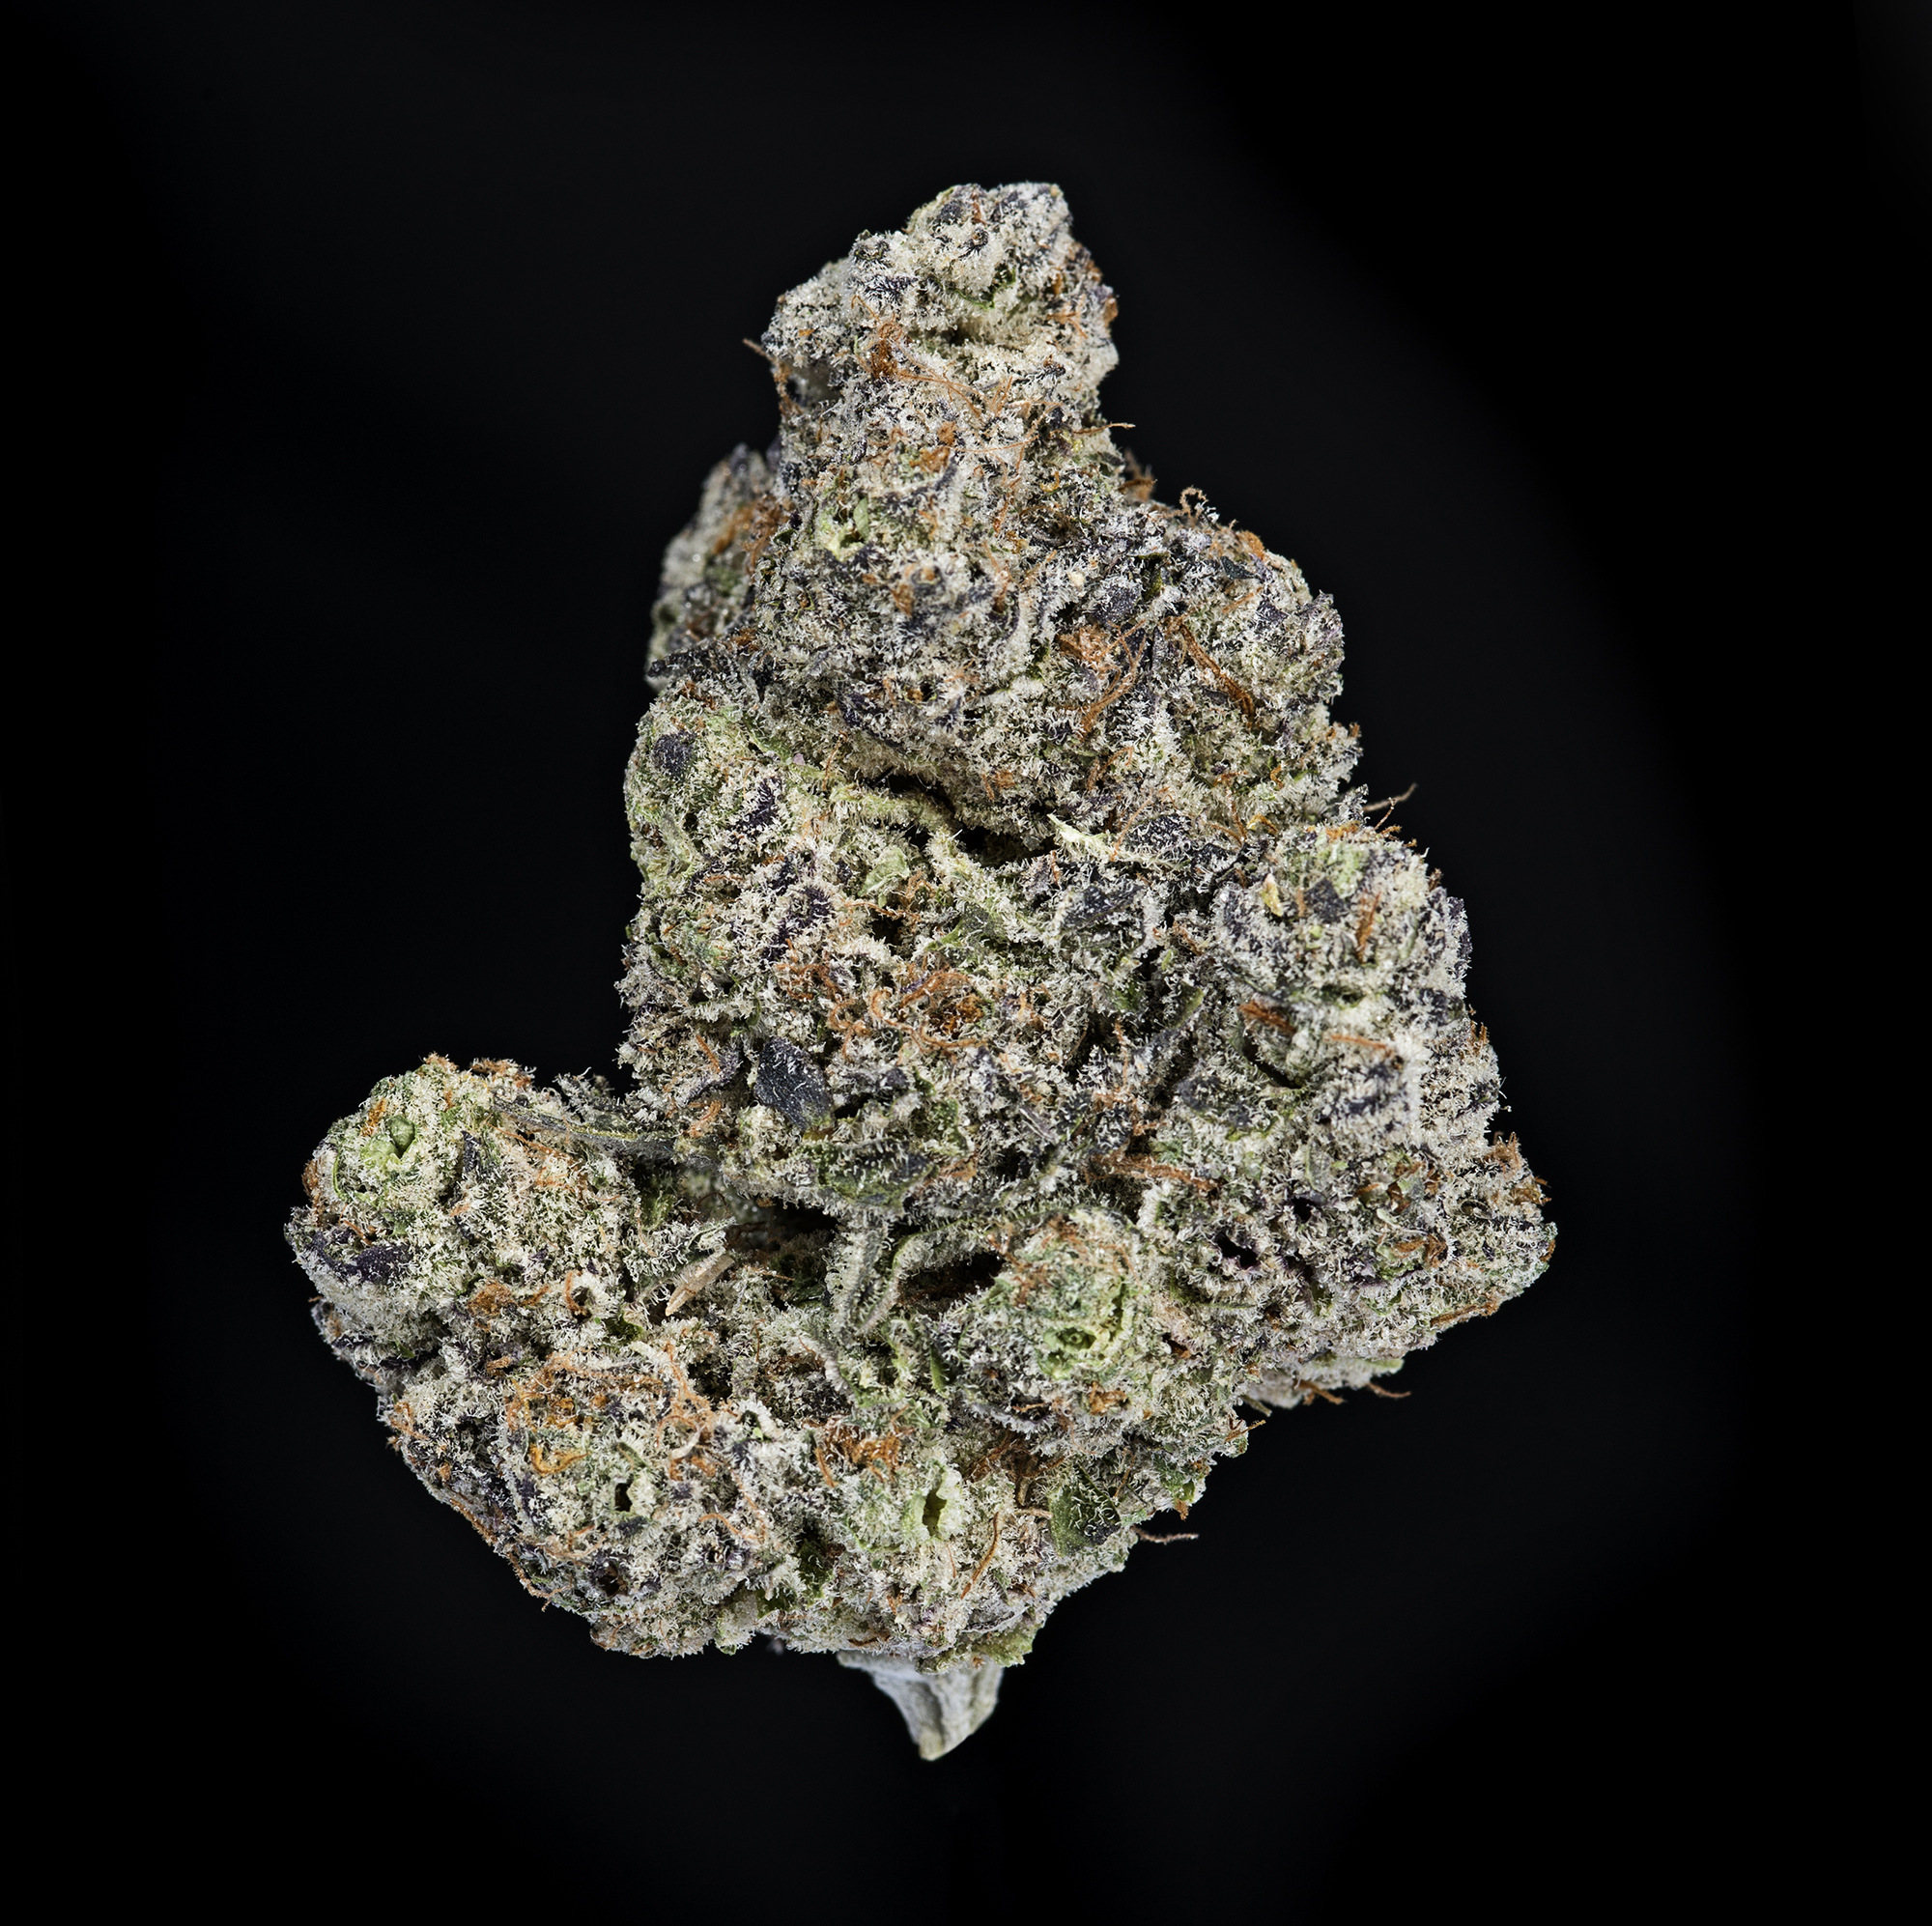 MENDO BREATH black